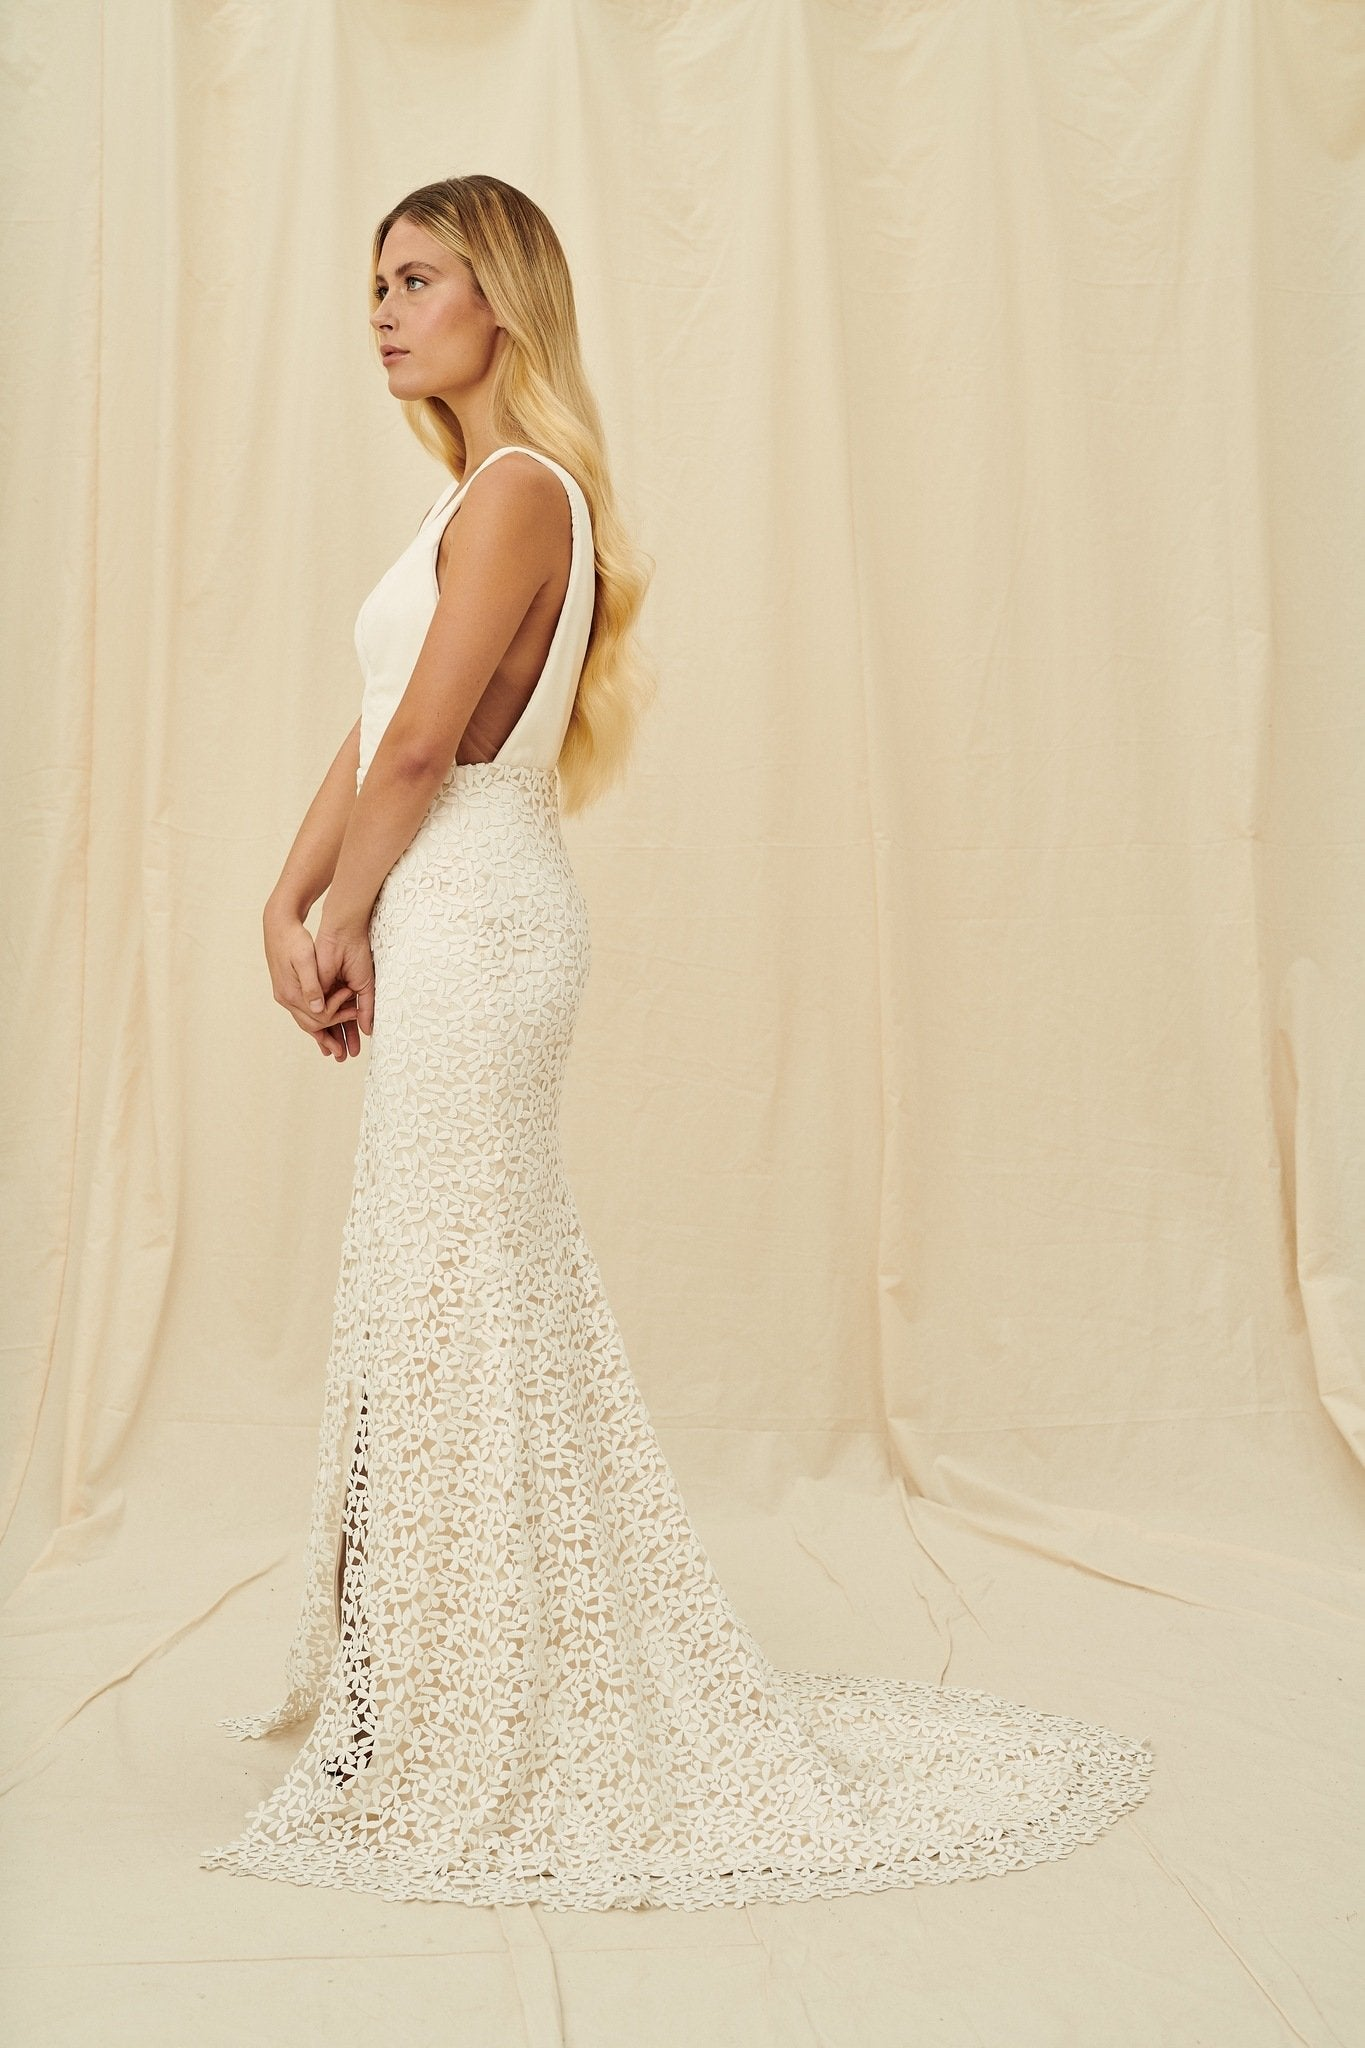 A mermaid wedding gown with a velvet v-neck bodice and floral lace slit skirt